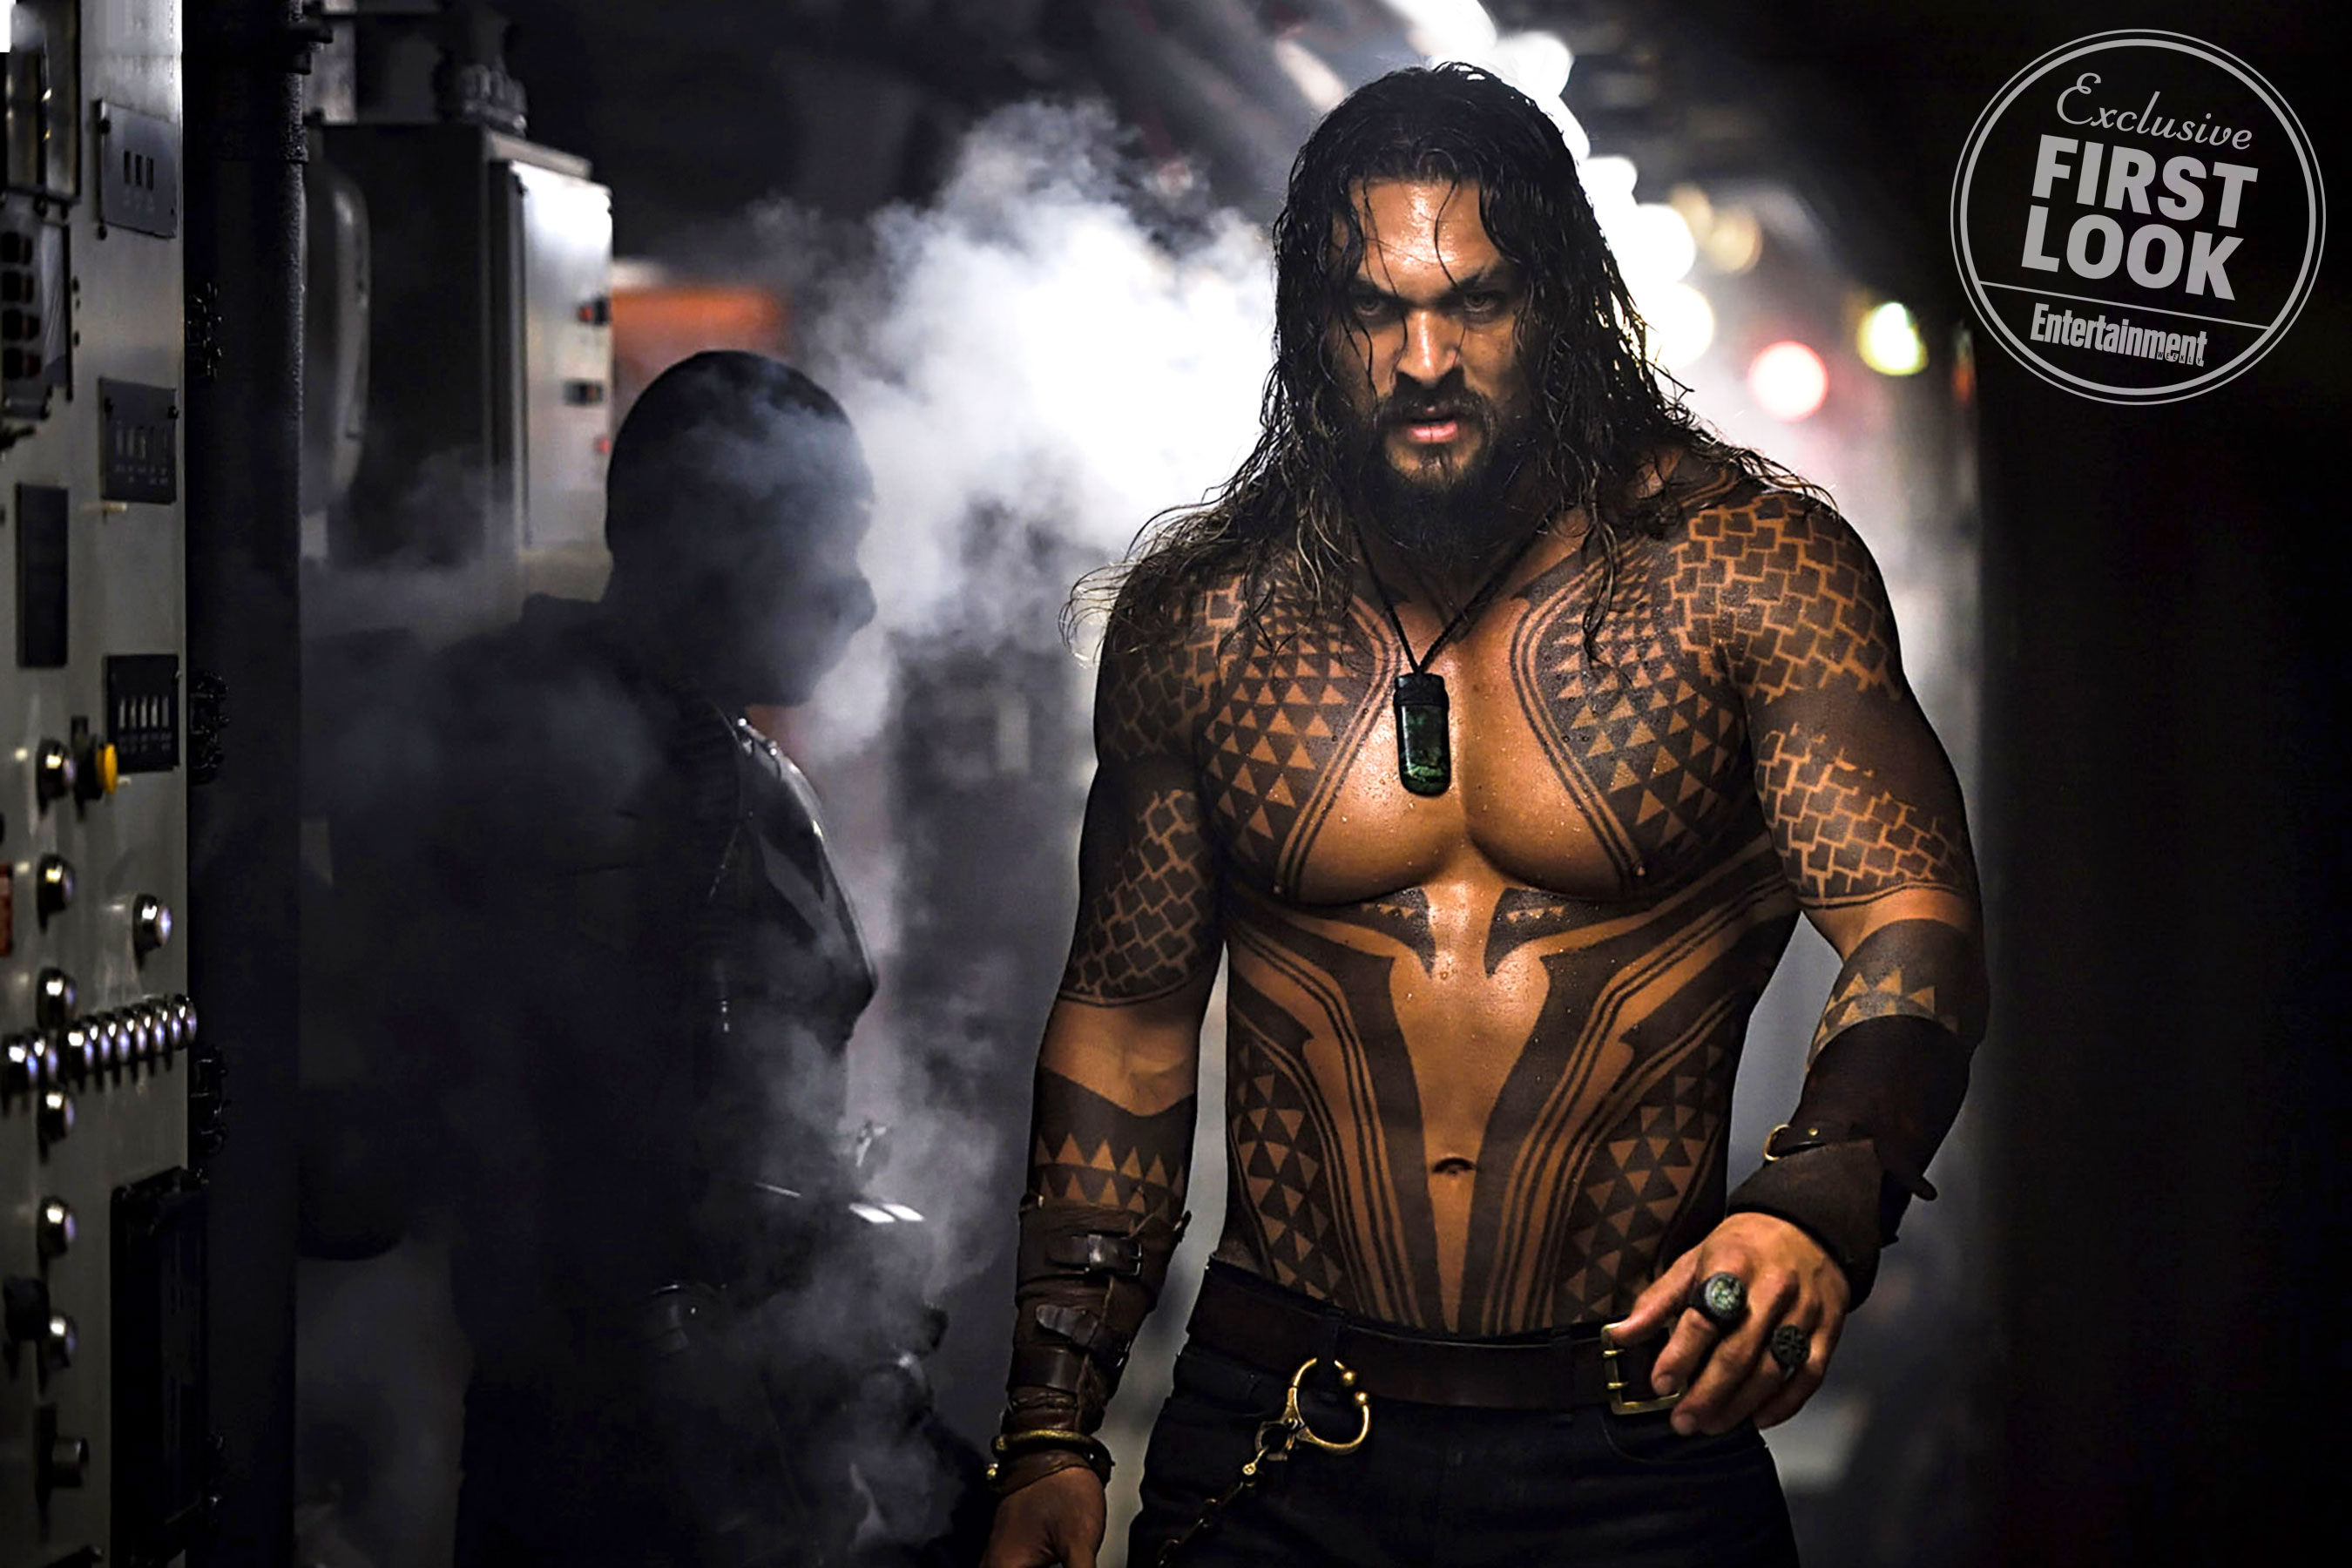 First look at Jason Momoa in the Aquaman movie